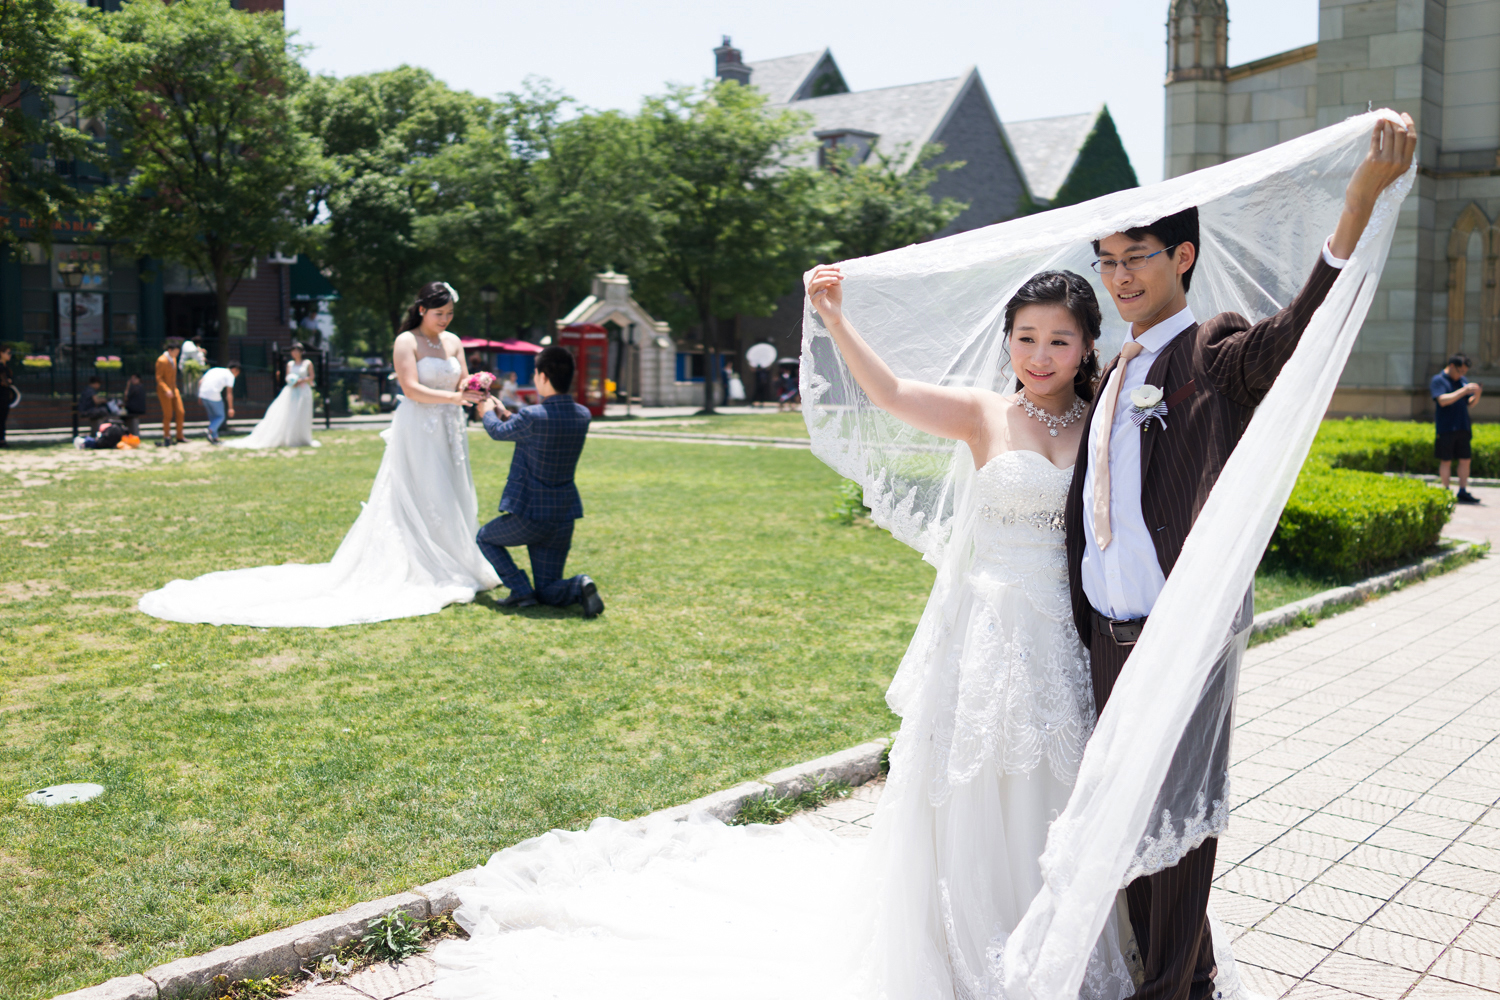 A young couple poses in  June 2015, in front of the church, a popular backdrop for wedding photos.